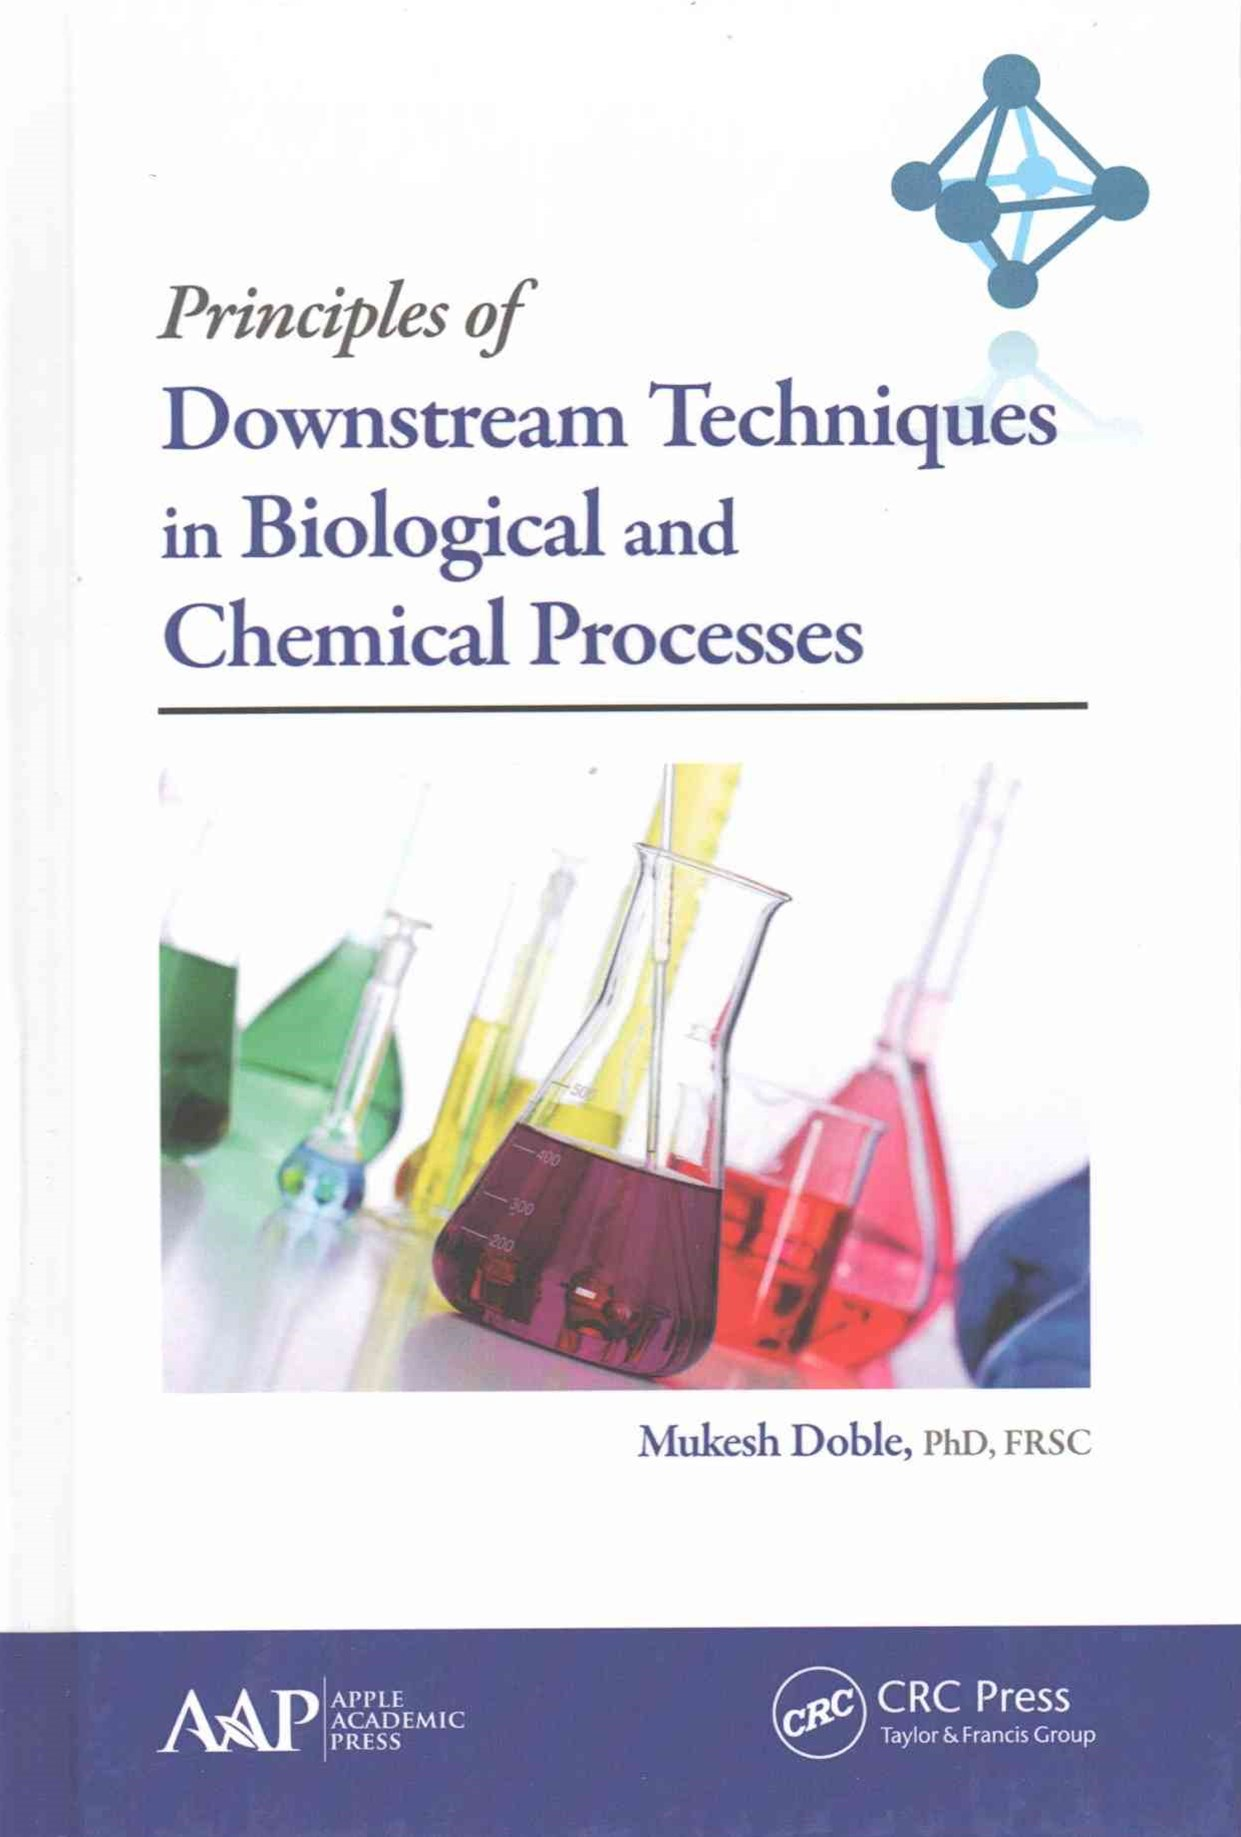 Principles of Downstream Techniques in Biological and Chemical Processes